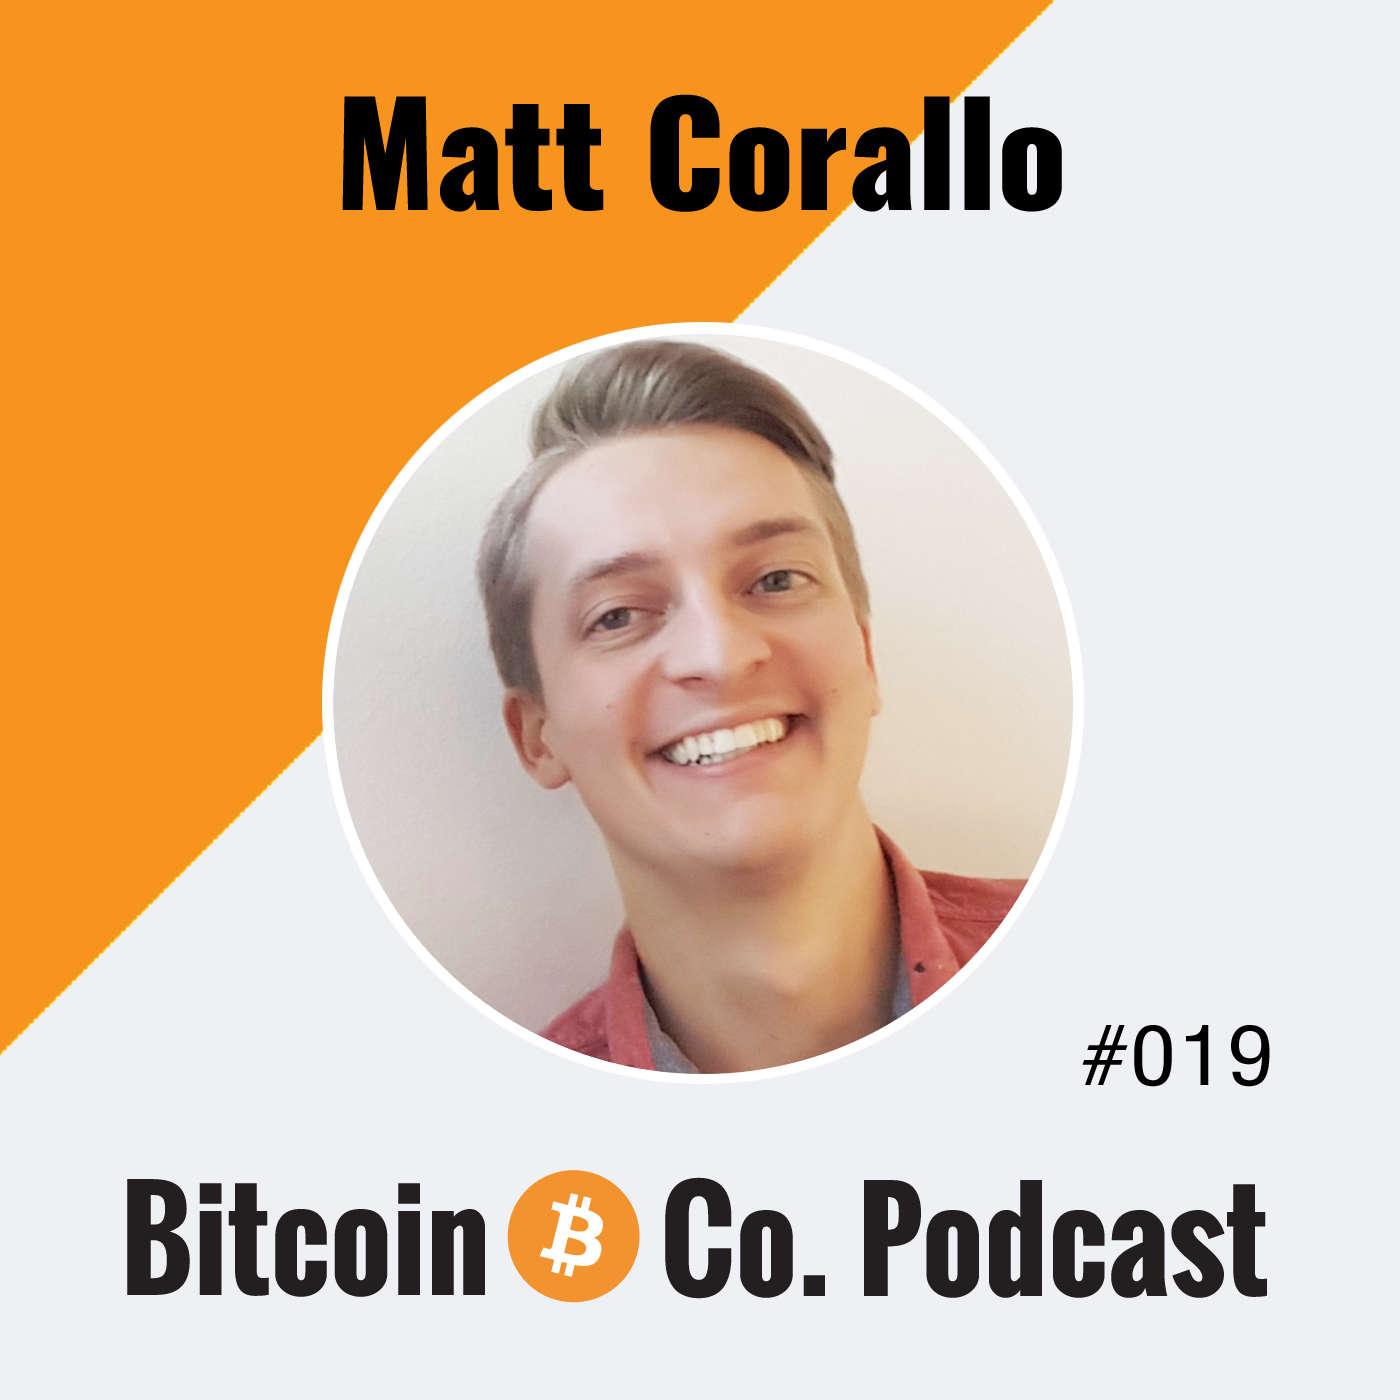 Podcast with Matt Corallo